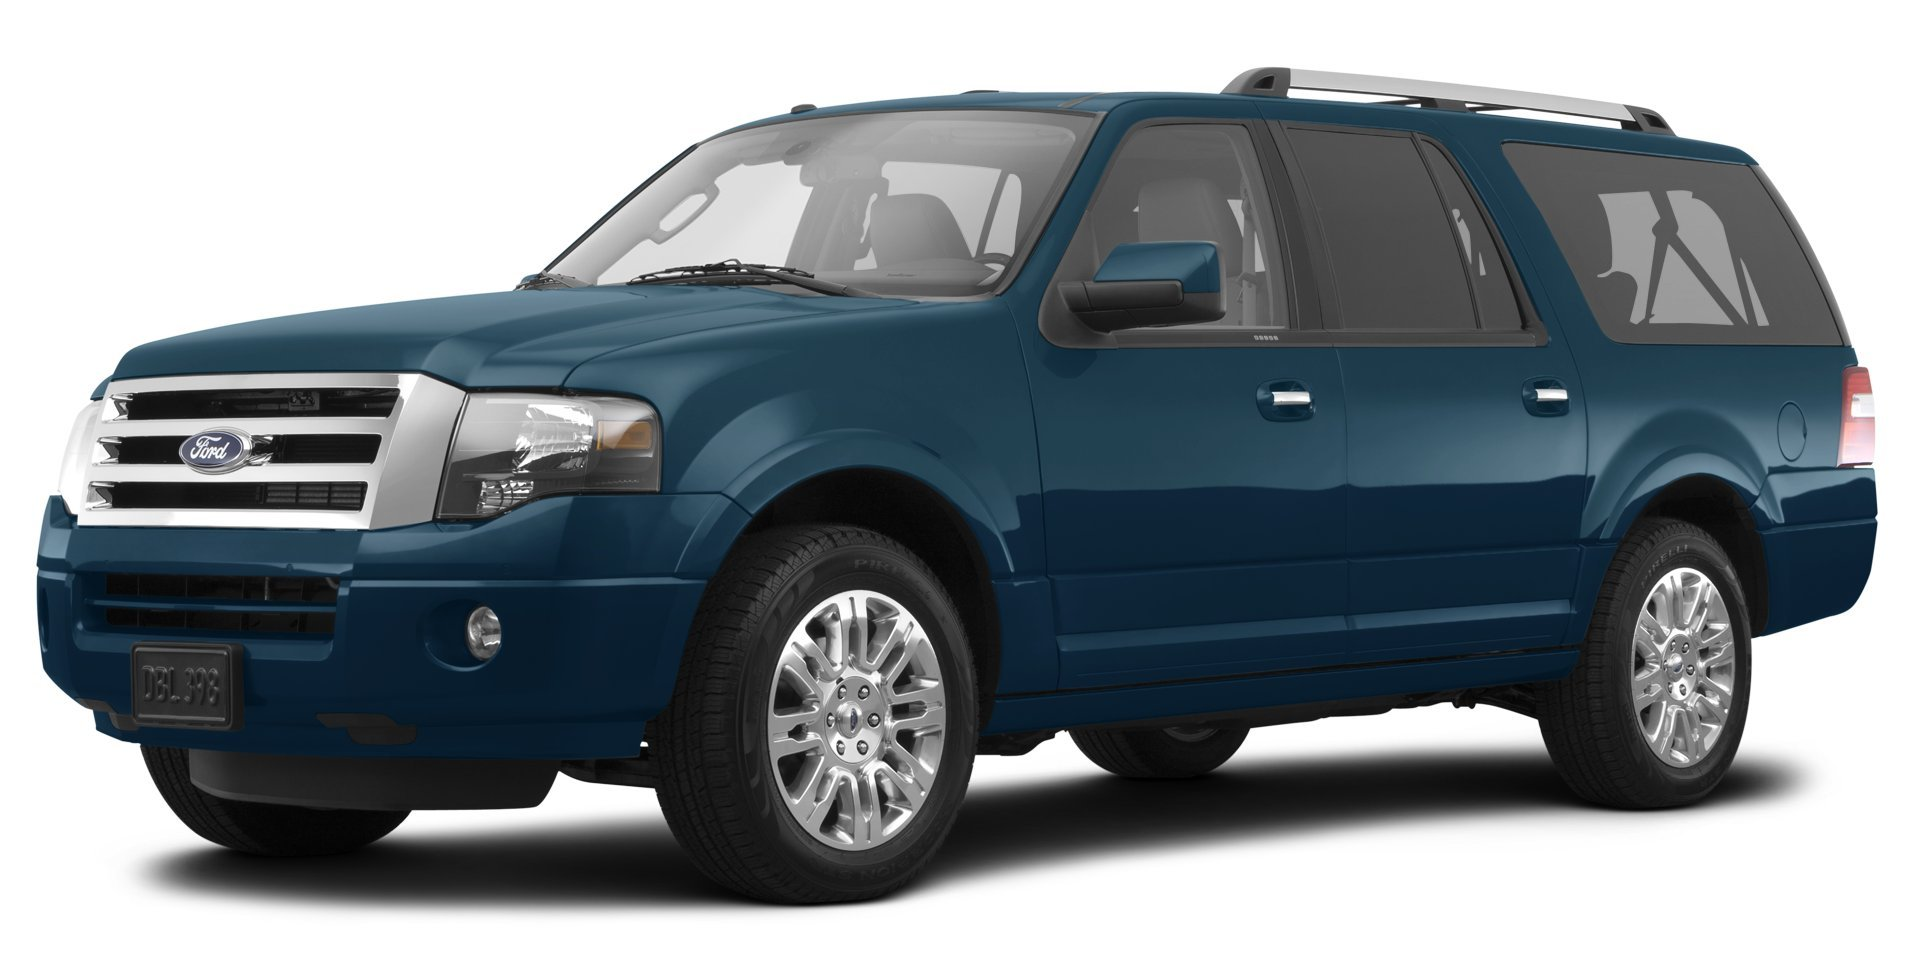 2014 ford expedition king ranch 2 wheel drive 4 door